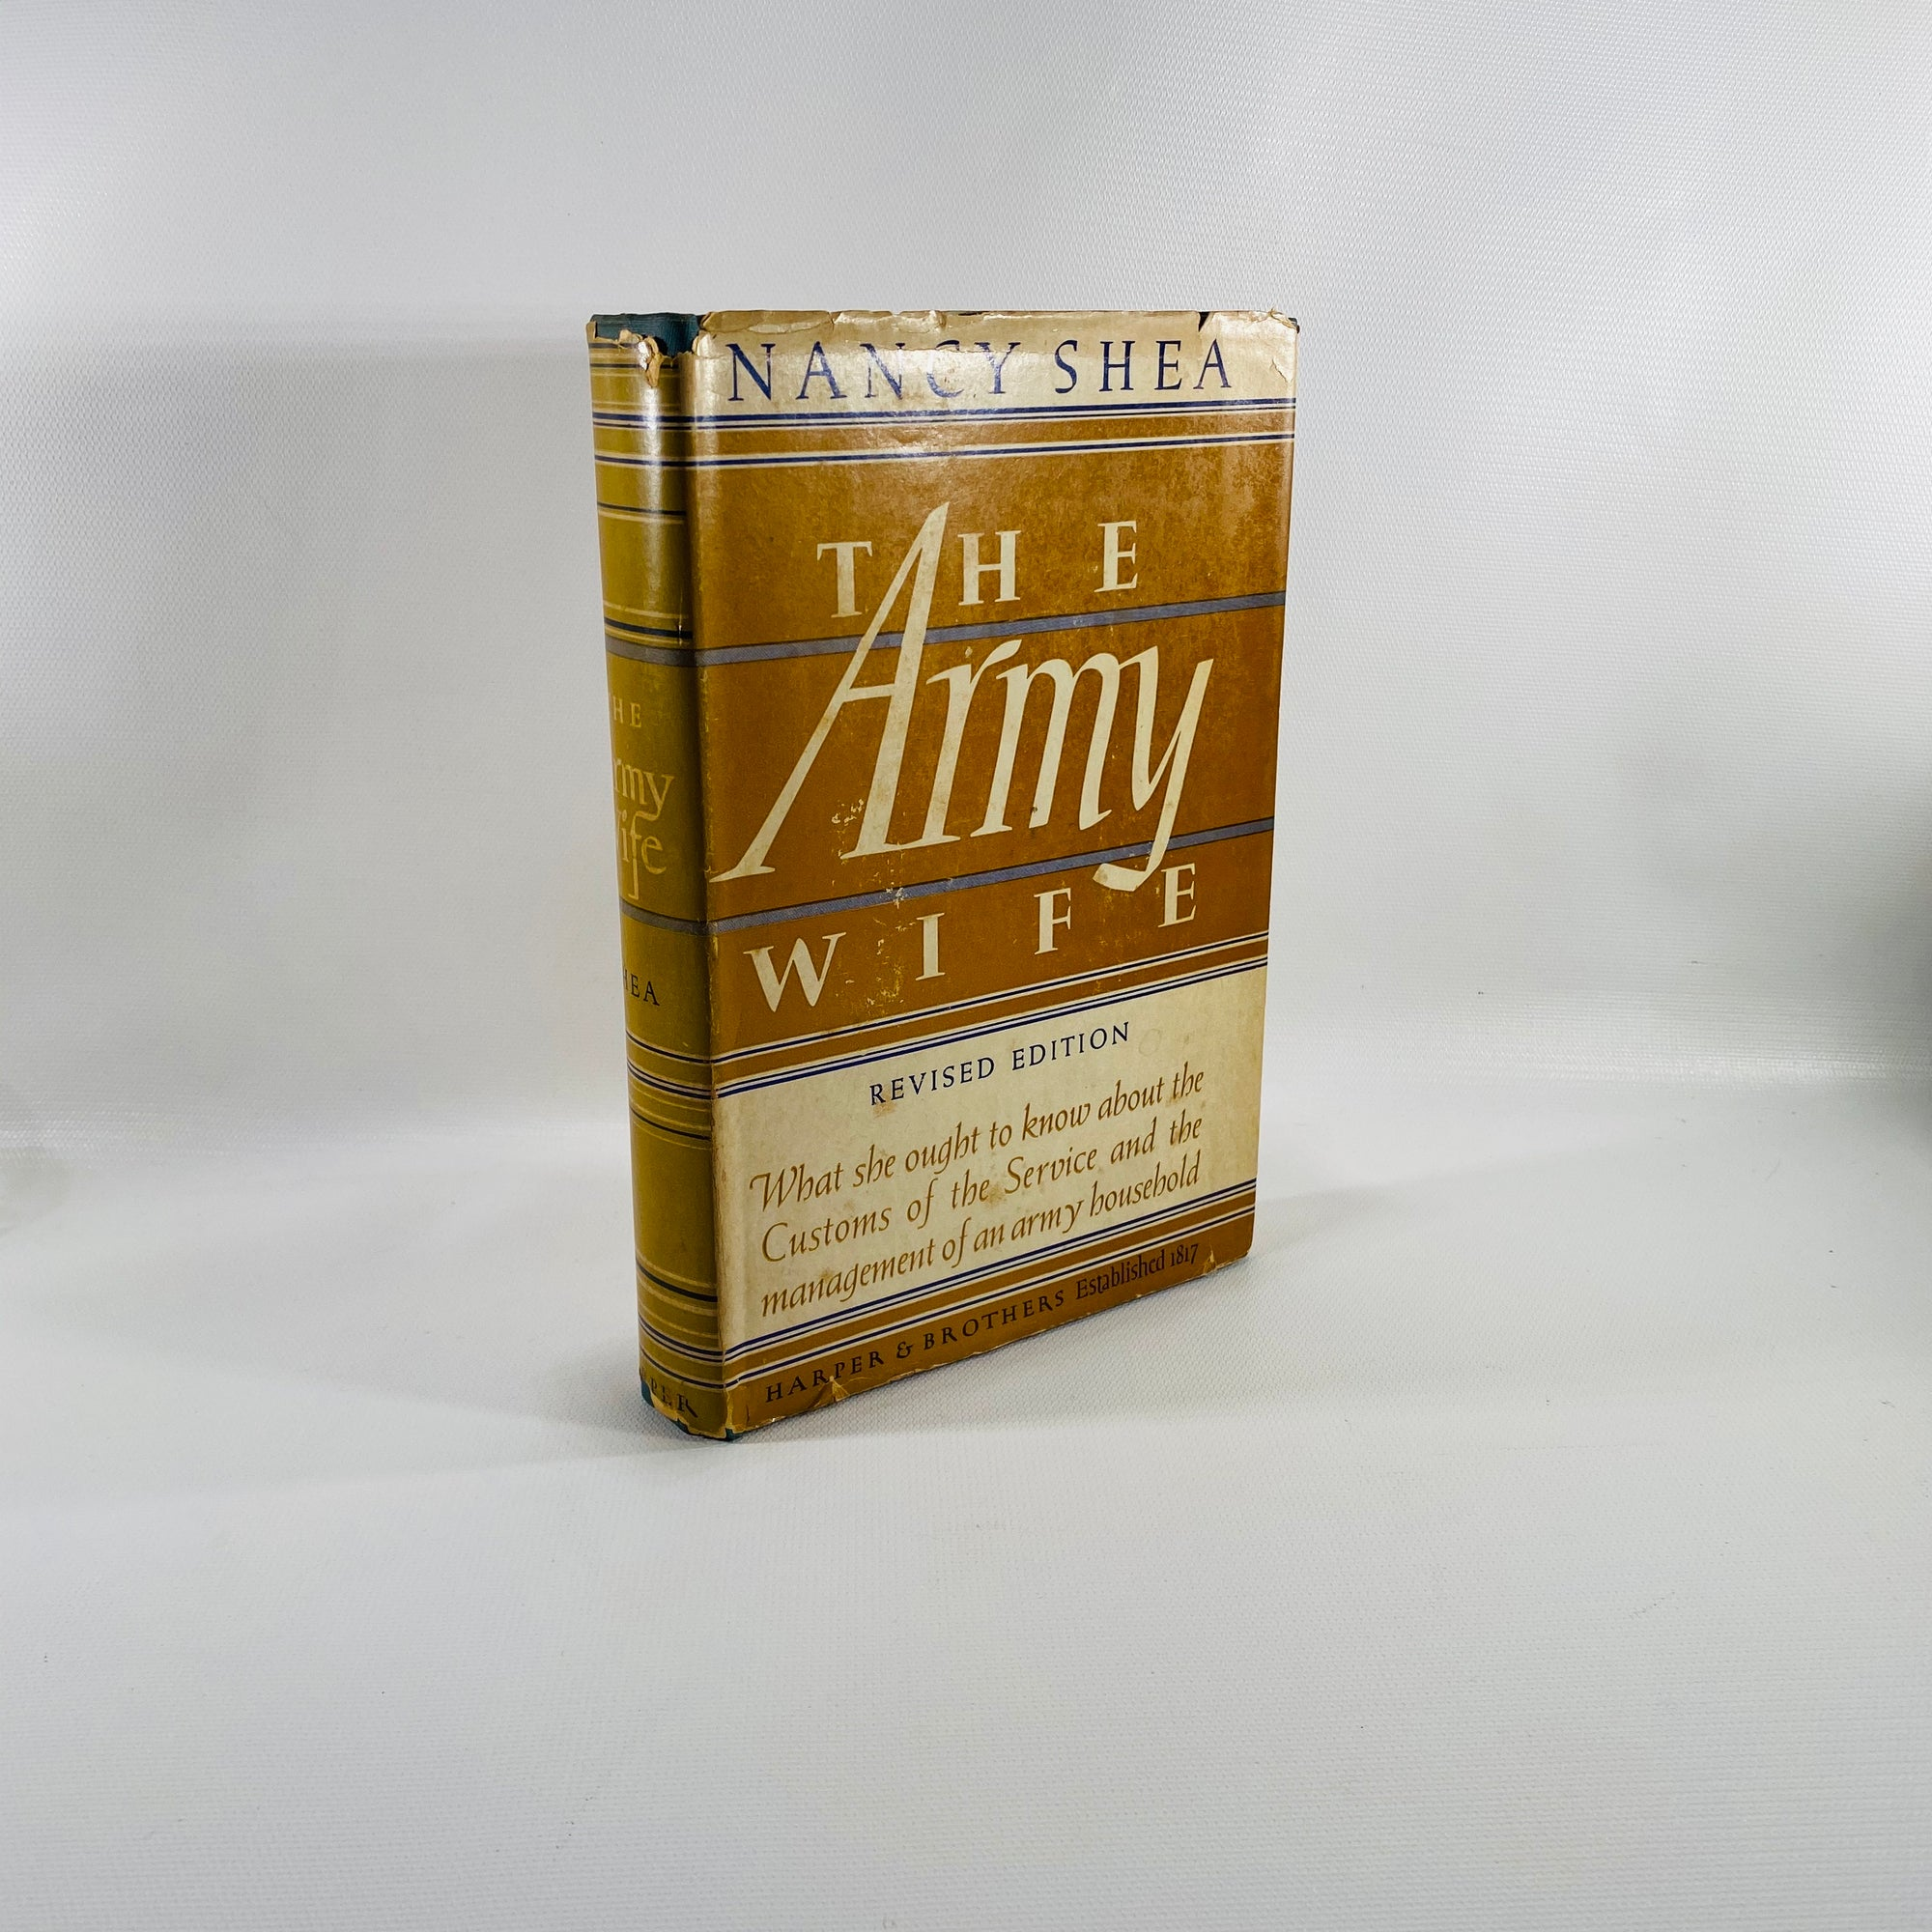 The Army Wife by Nancy Shea 1942